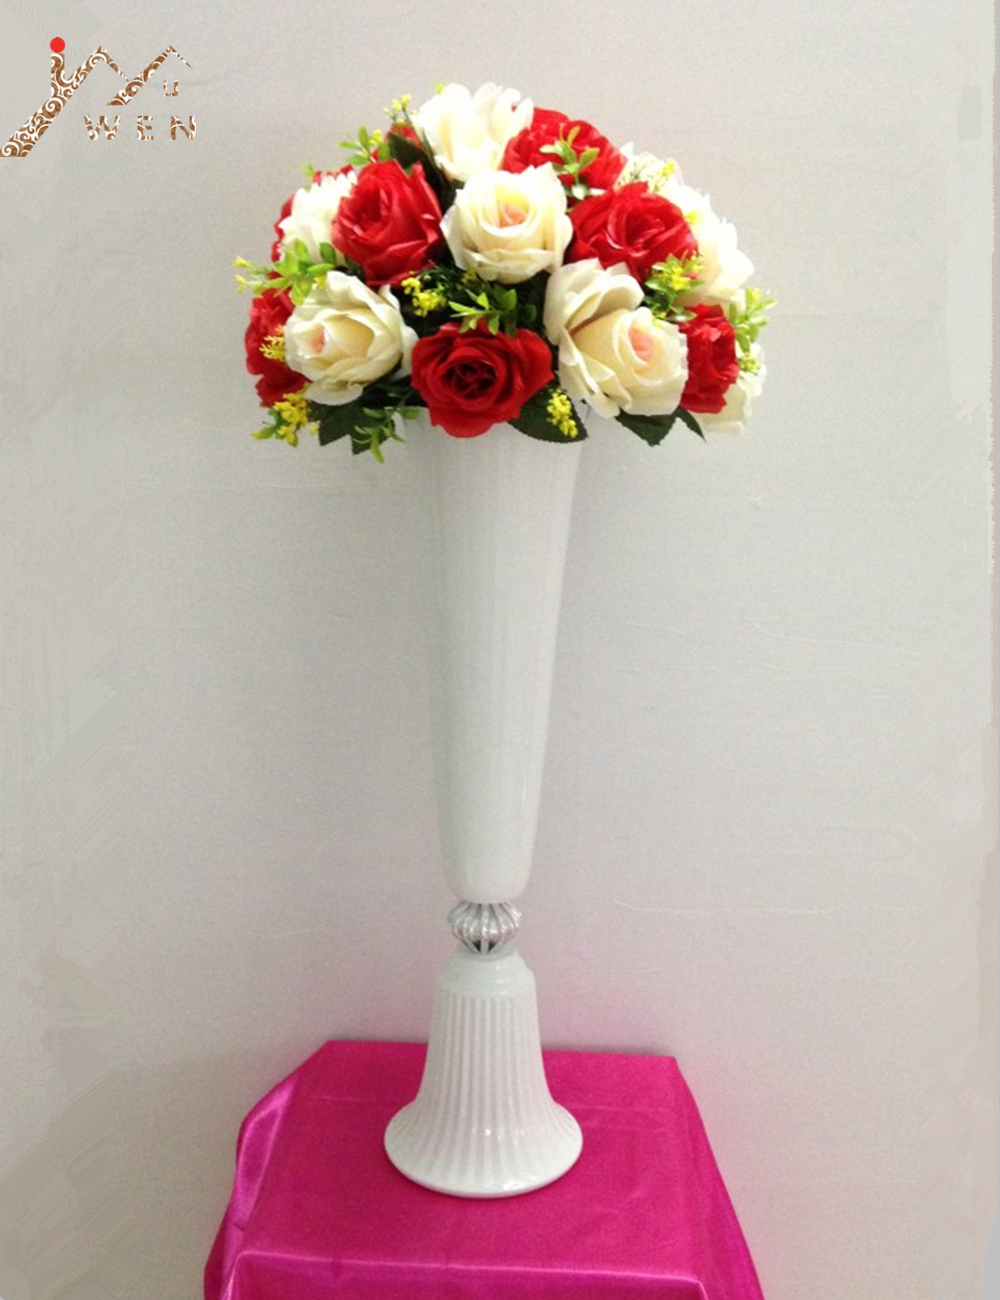 57cm height white metal candle holder candle stand wedding centerpiece event road lead flower rack event vase 2pcs / lot57cm height white metal candle holder candle stand wedding centerpiece event road lead flower rack event vase 2pcs / lot